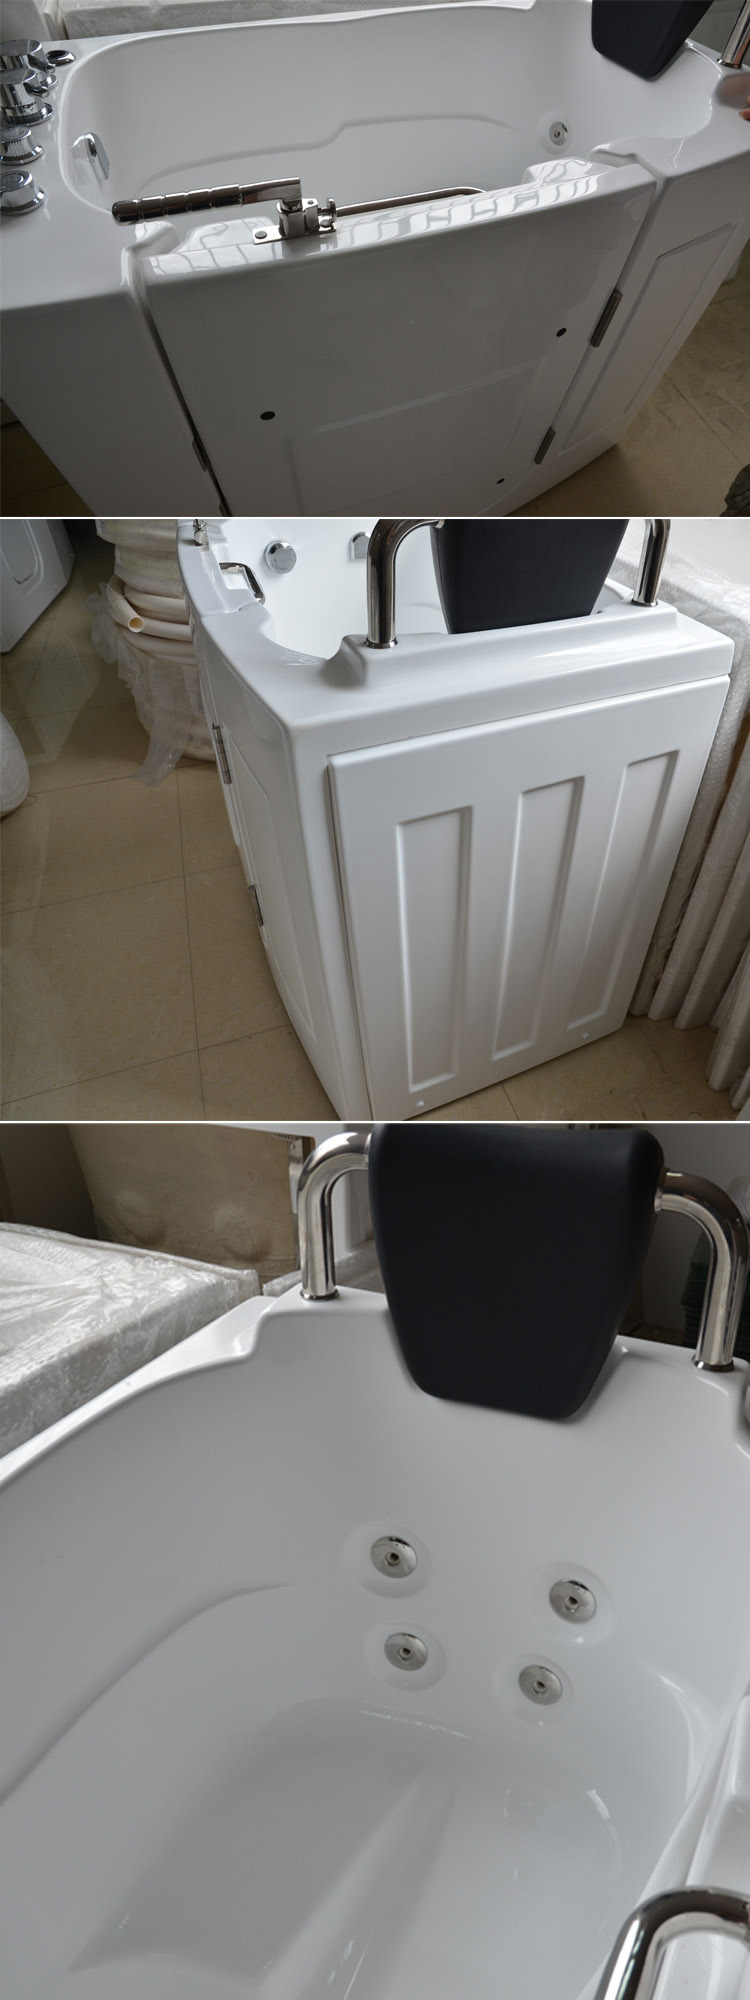 Hs 1108 Walk In Bathtub China Walk In Bathtub Corner For Disabled Bathtub